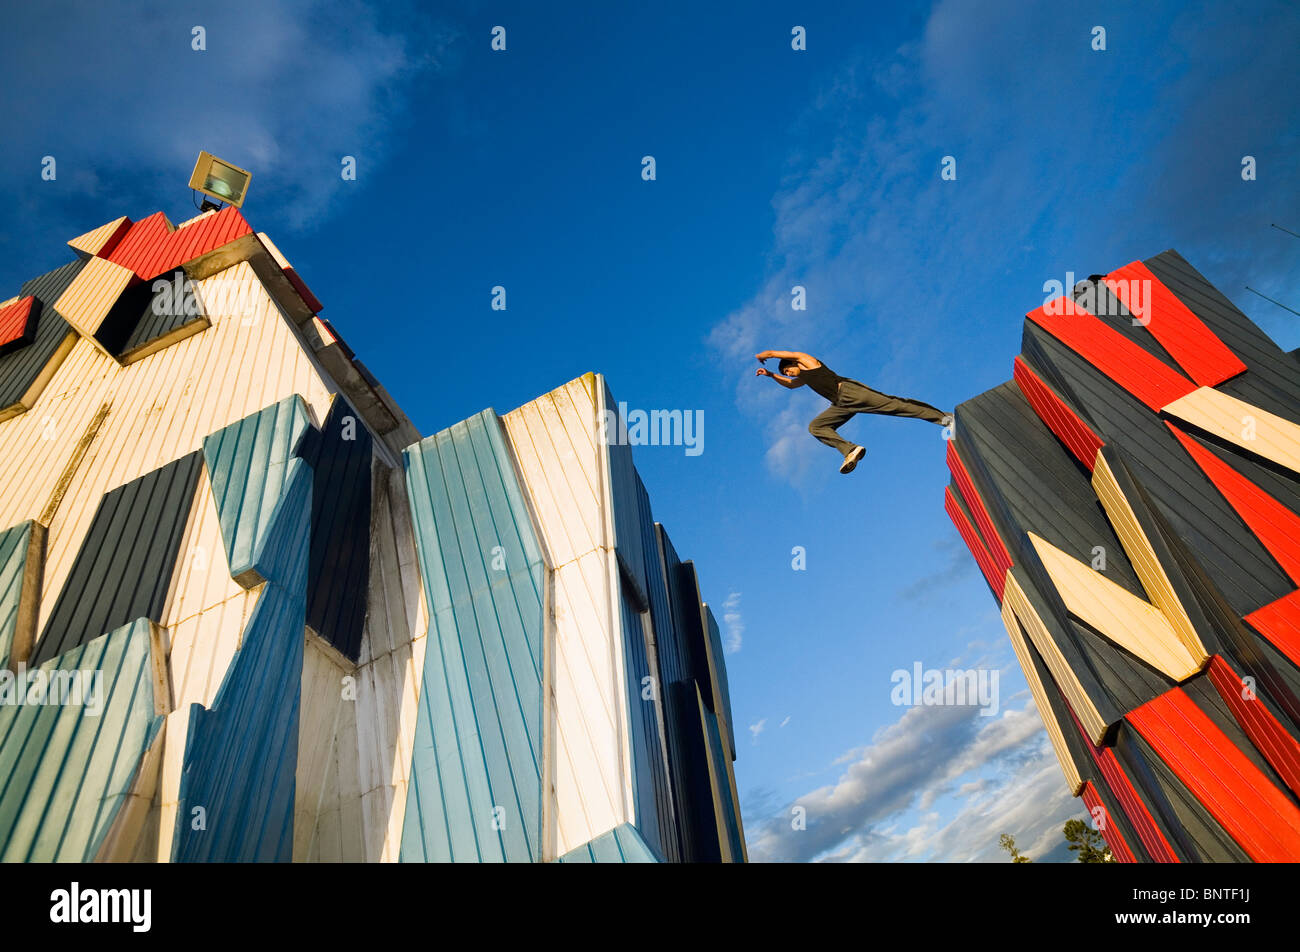 A man practices the urban sport of parkour (free running) across sculptures in Adelaide, South Australia, AUSTRALIA. - Stock Image